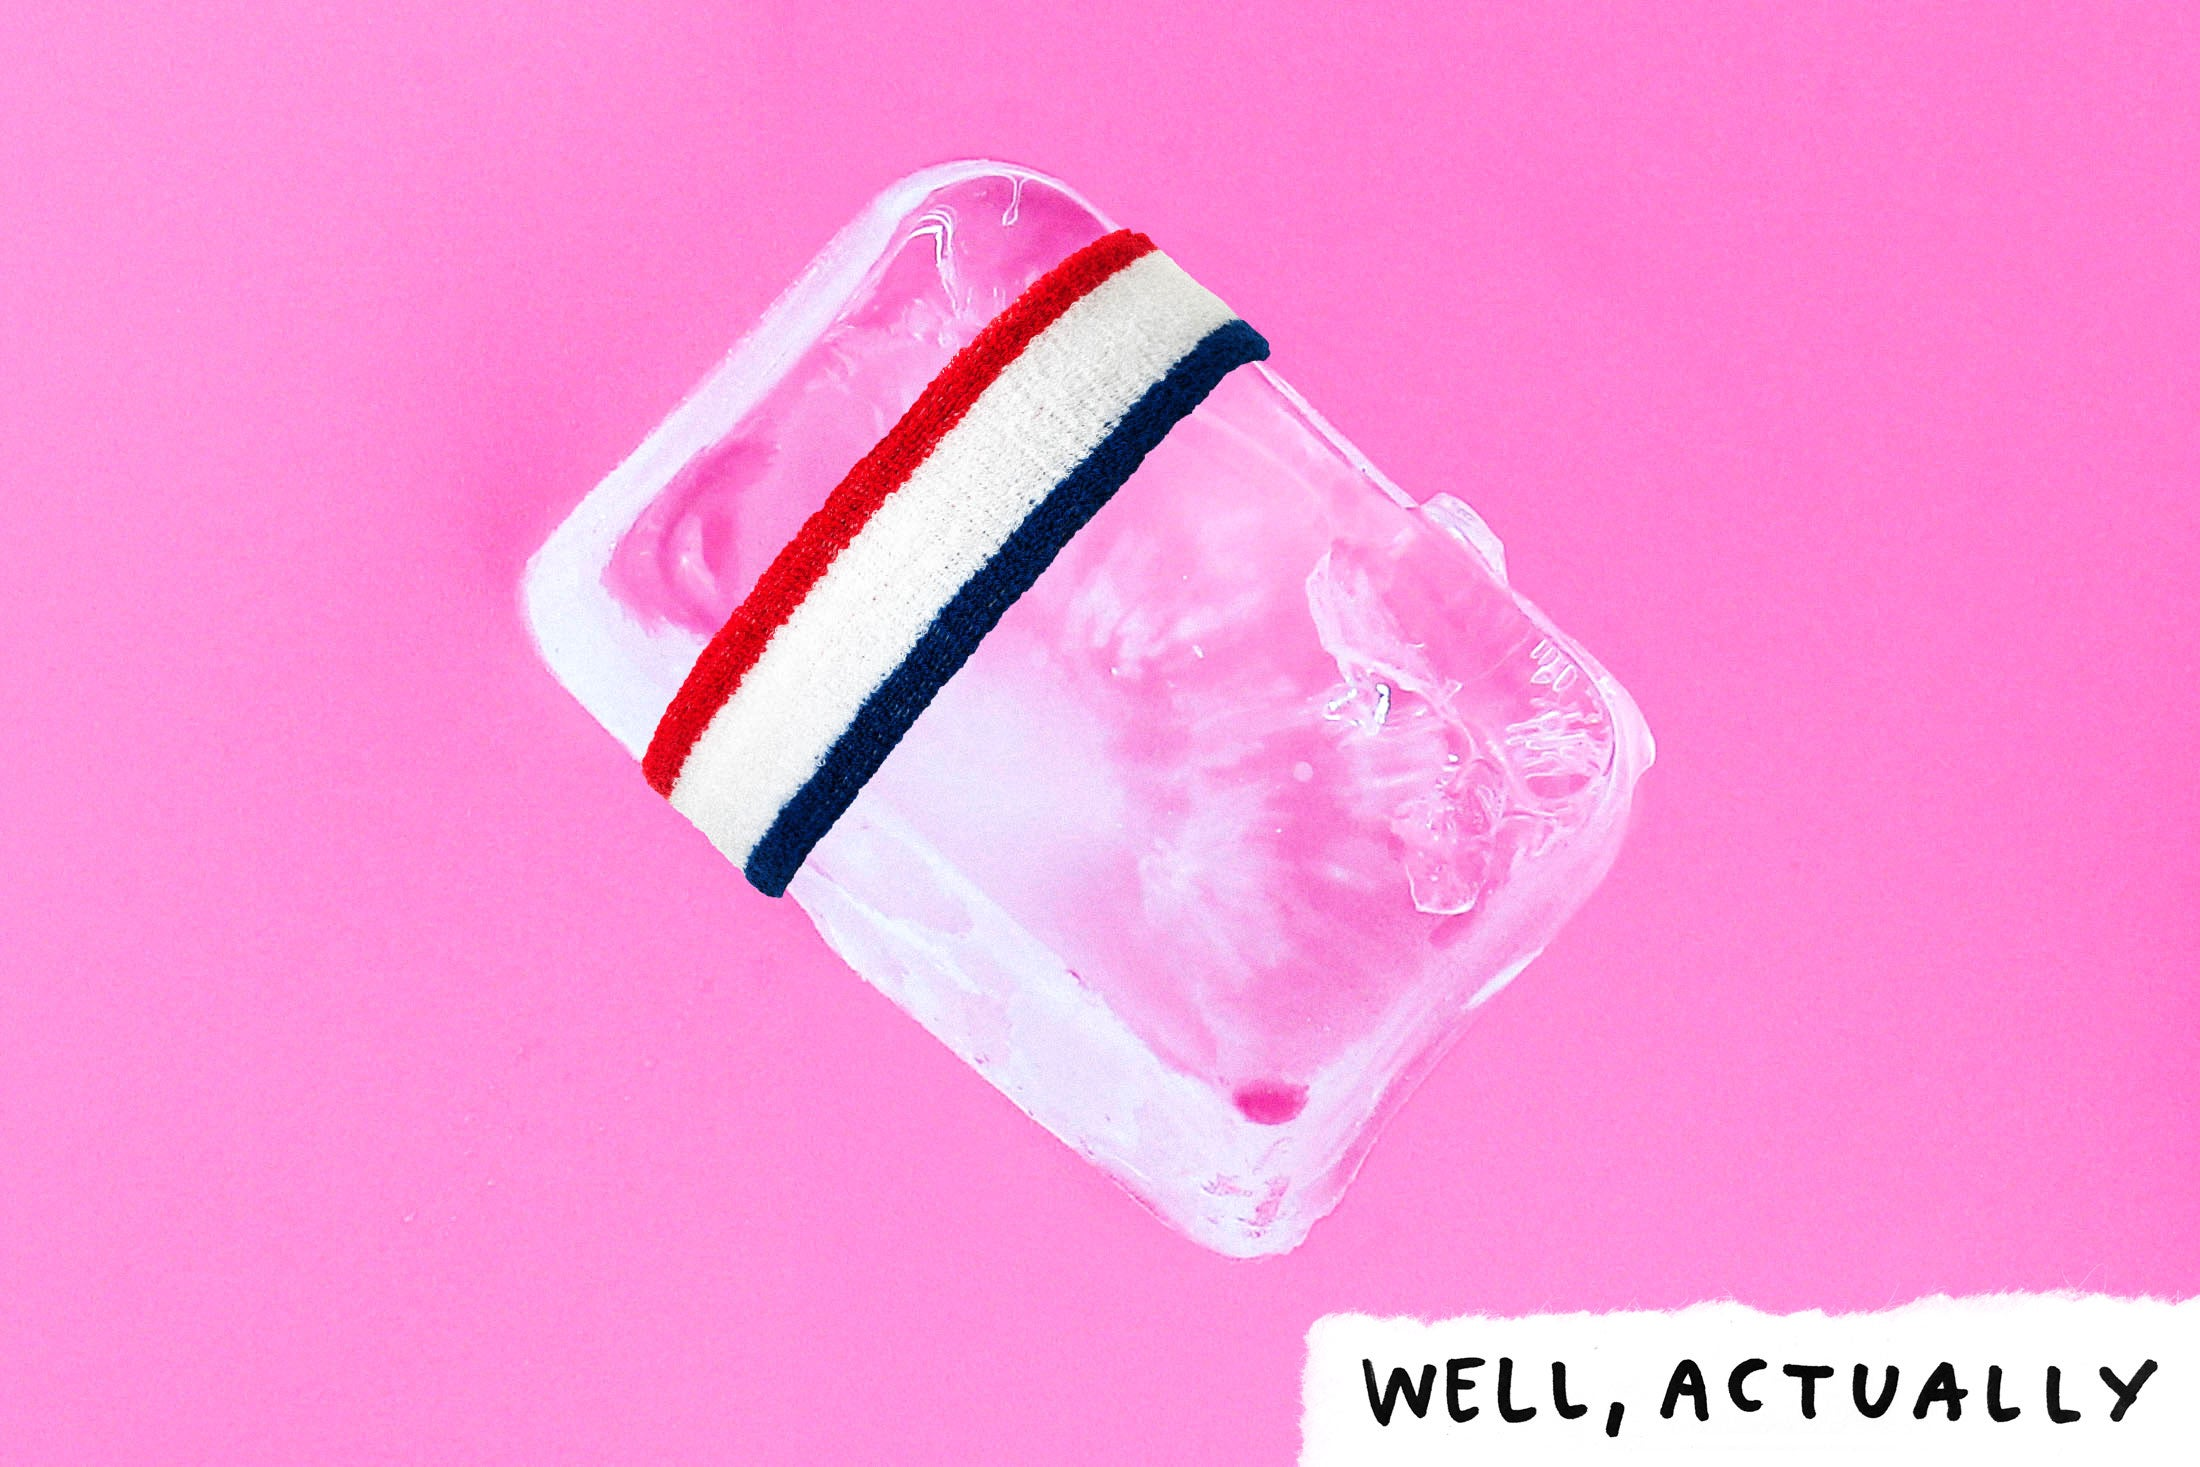 An ice cube with a headband wrapped around it